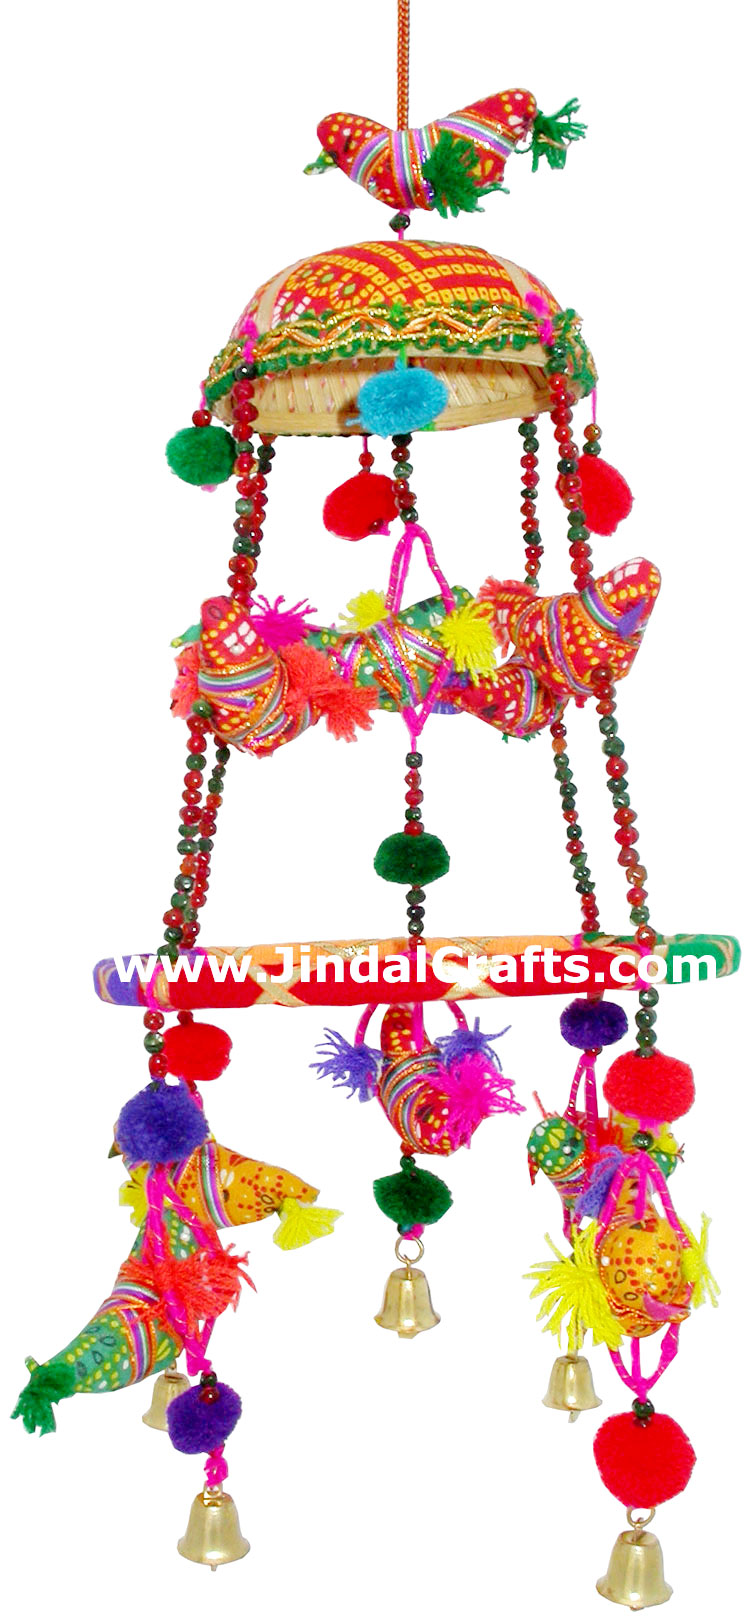 Handmade Traditional Eleven Birds Hanging India Folk